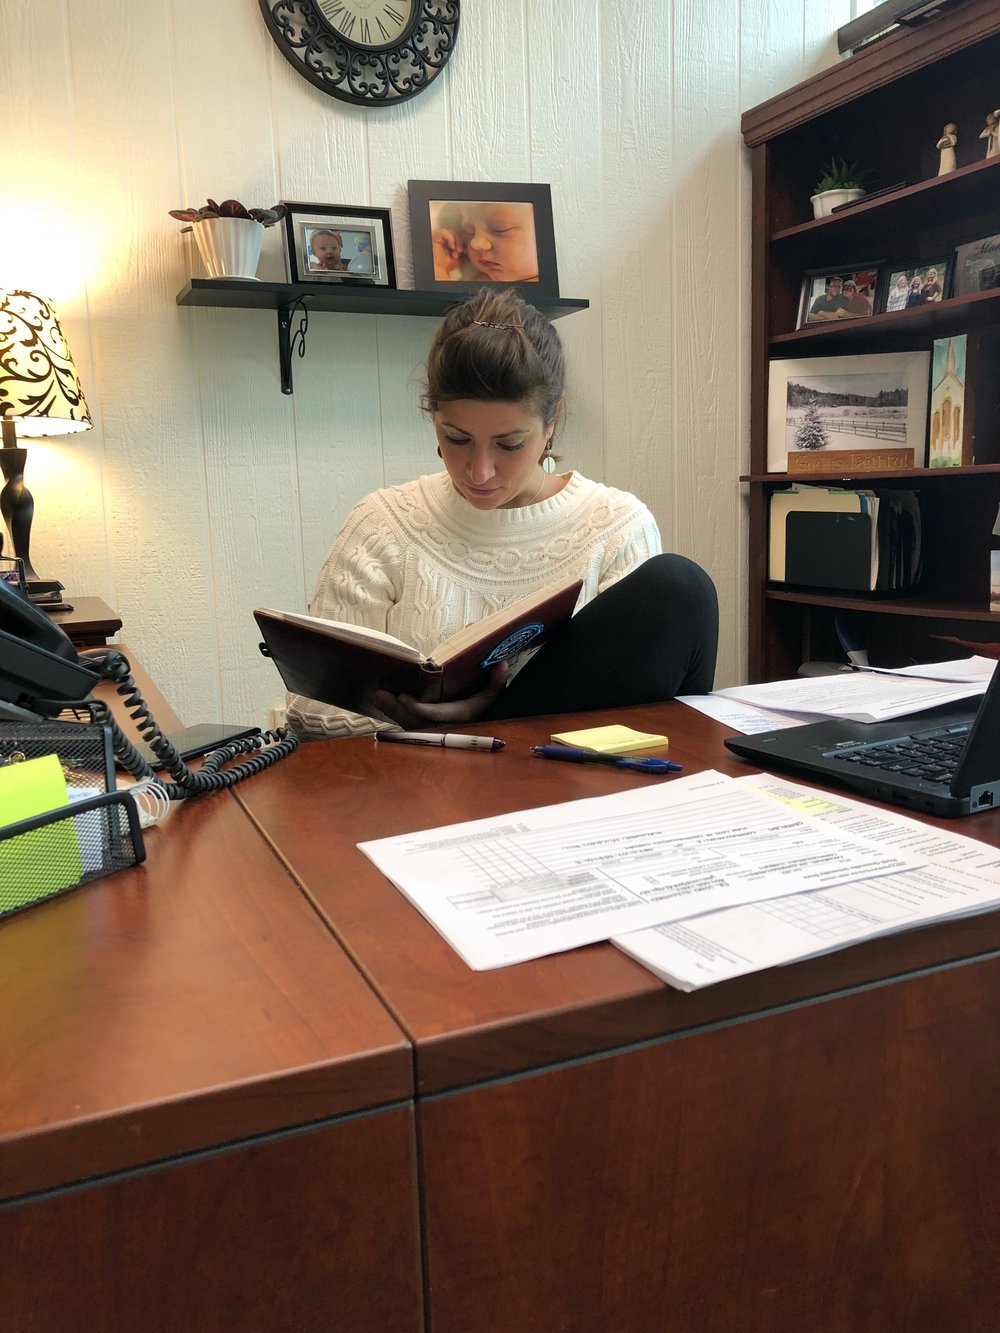 Lydia Rodgers reviews her schedule sitting at her desk.